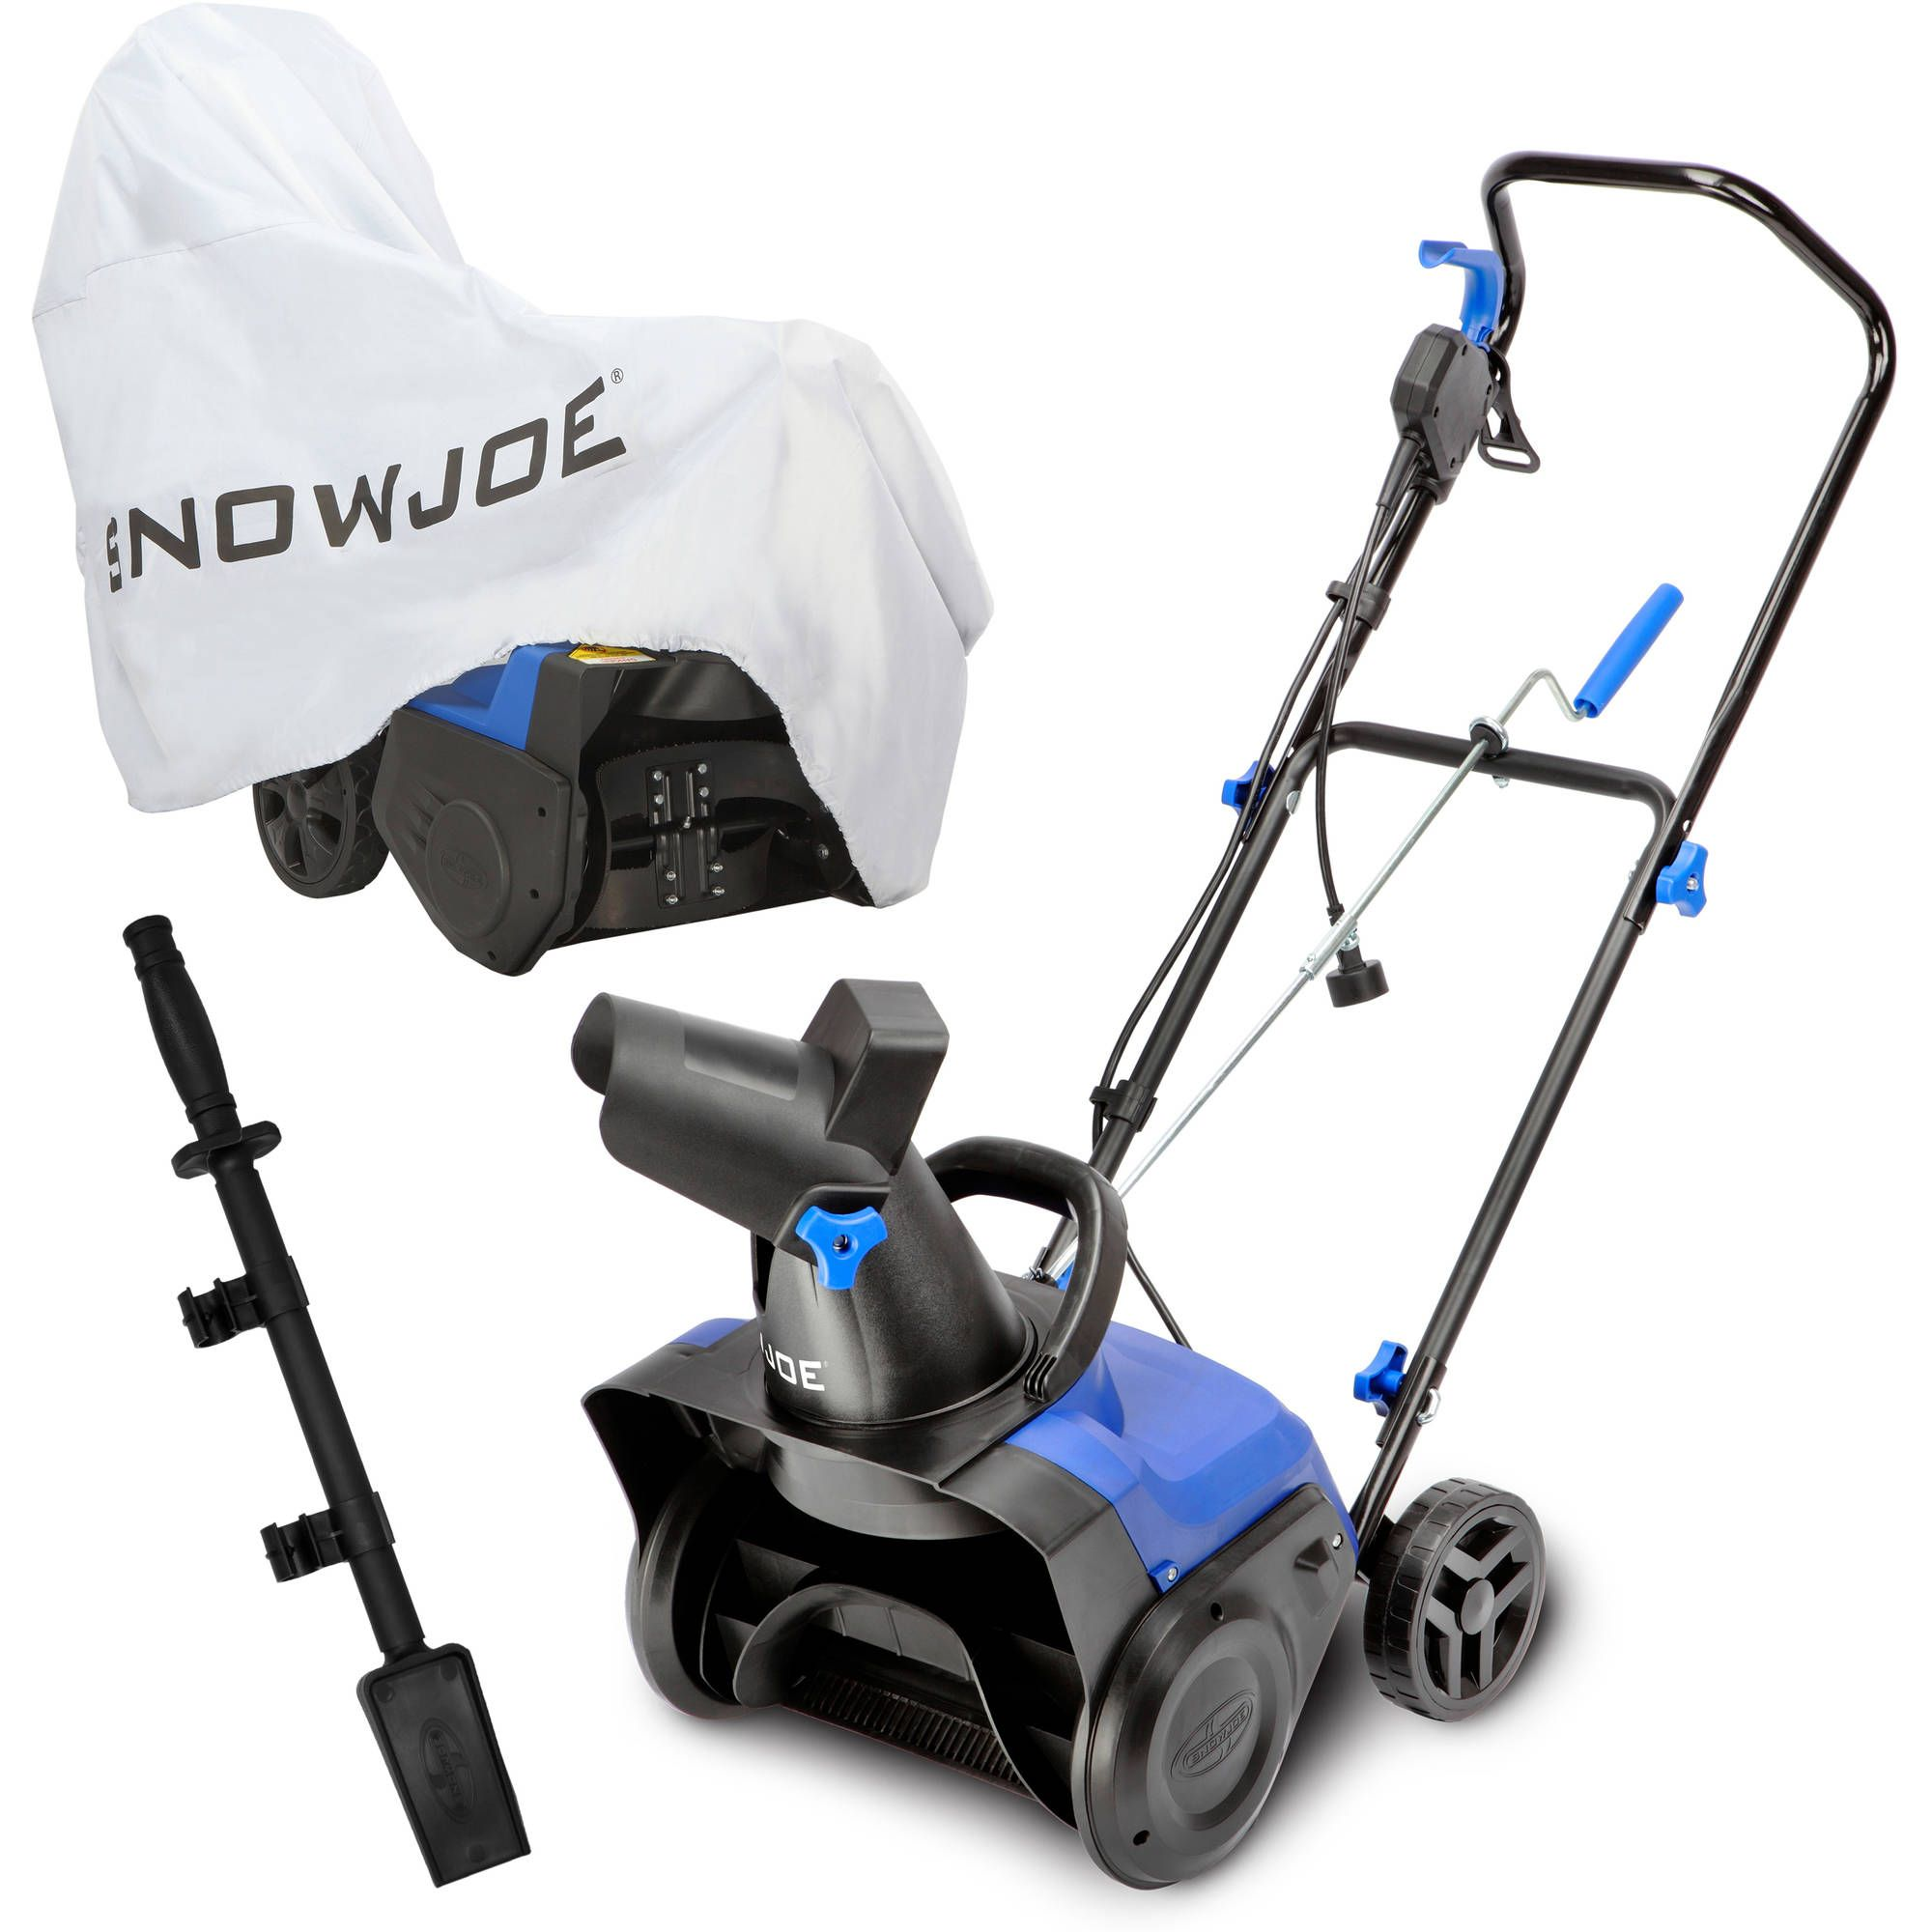 Recomeneded Snow Joe 15 11 Amp Electric Snow Blower Bundle Includes Sj615e Cover Chute Clean Out Tool Electric Snow Blower Snow Blower Snow Blowers